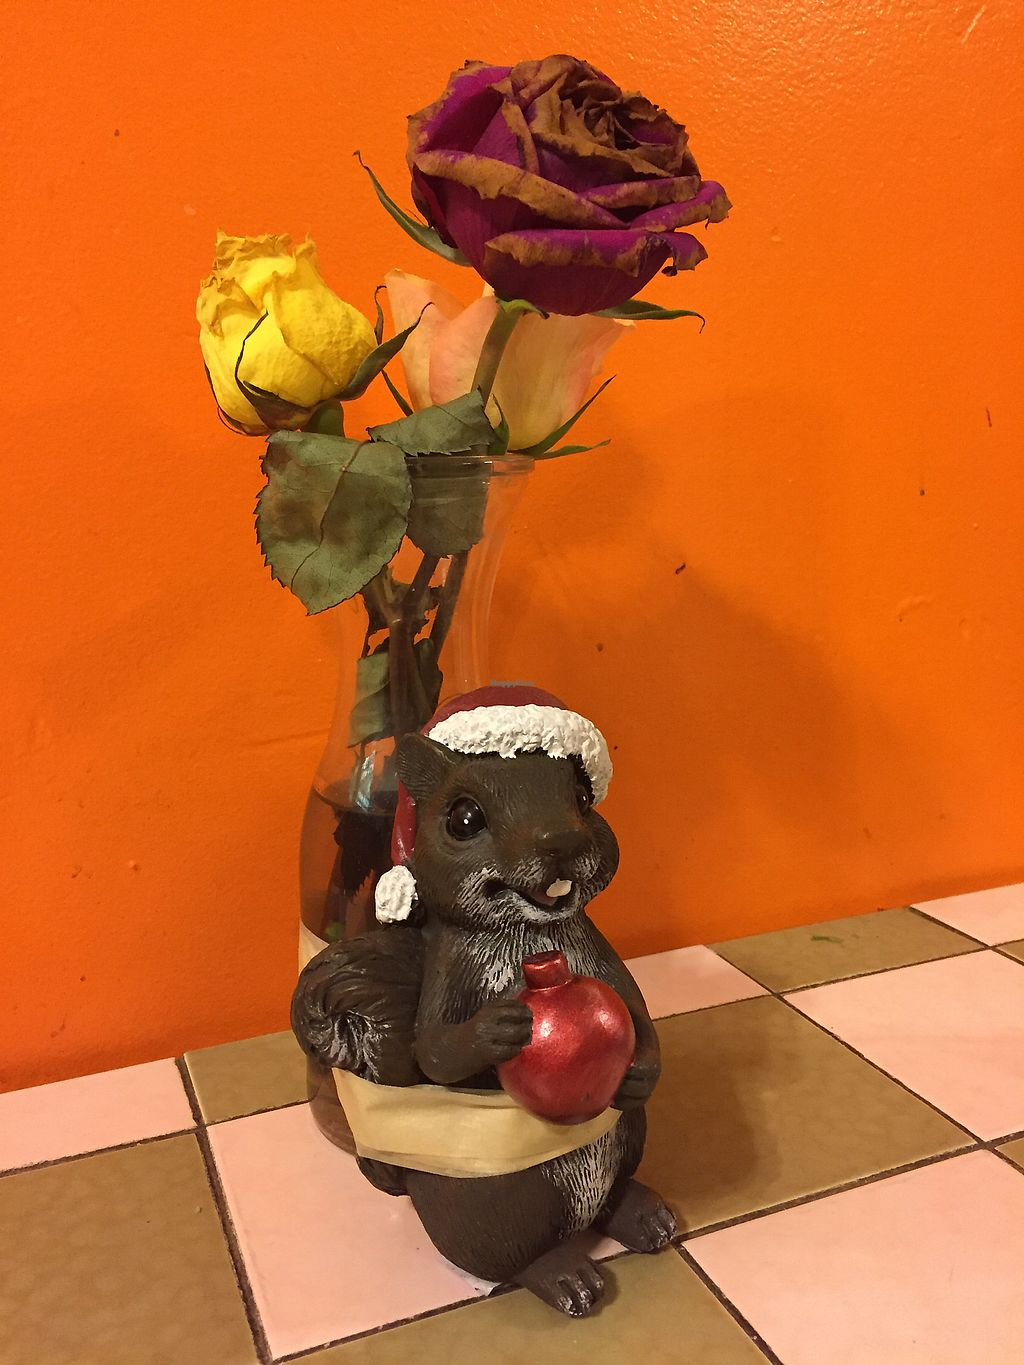 """Photo of Los Taquitos Taqueria  by <a href=""""/members/profile/VeganDedeLee"""">VeganDedeLee</a> <br/>Love the decor!  <br/> January 27, 2018  - <a href='/contact/abuse/image/56990/351298'>Report</a>"""